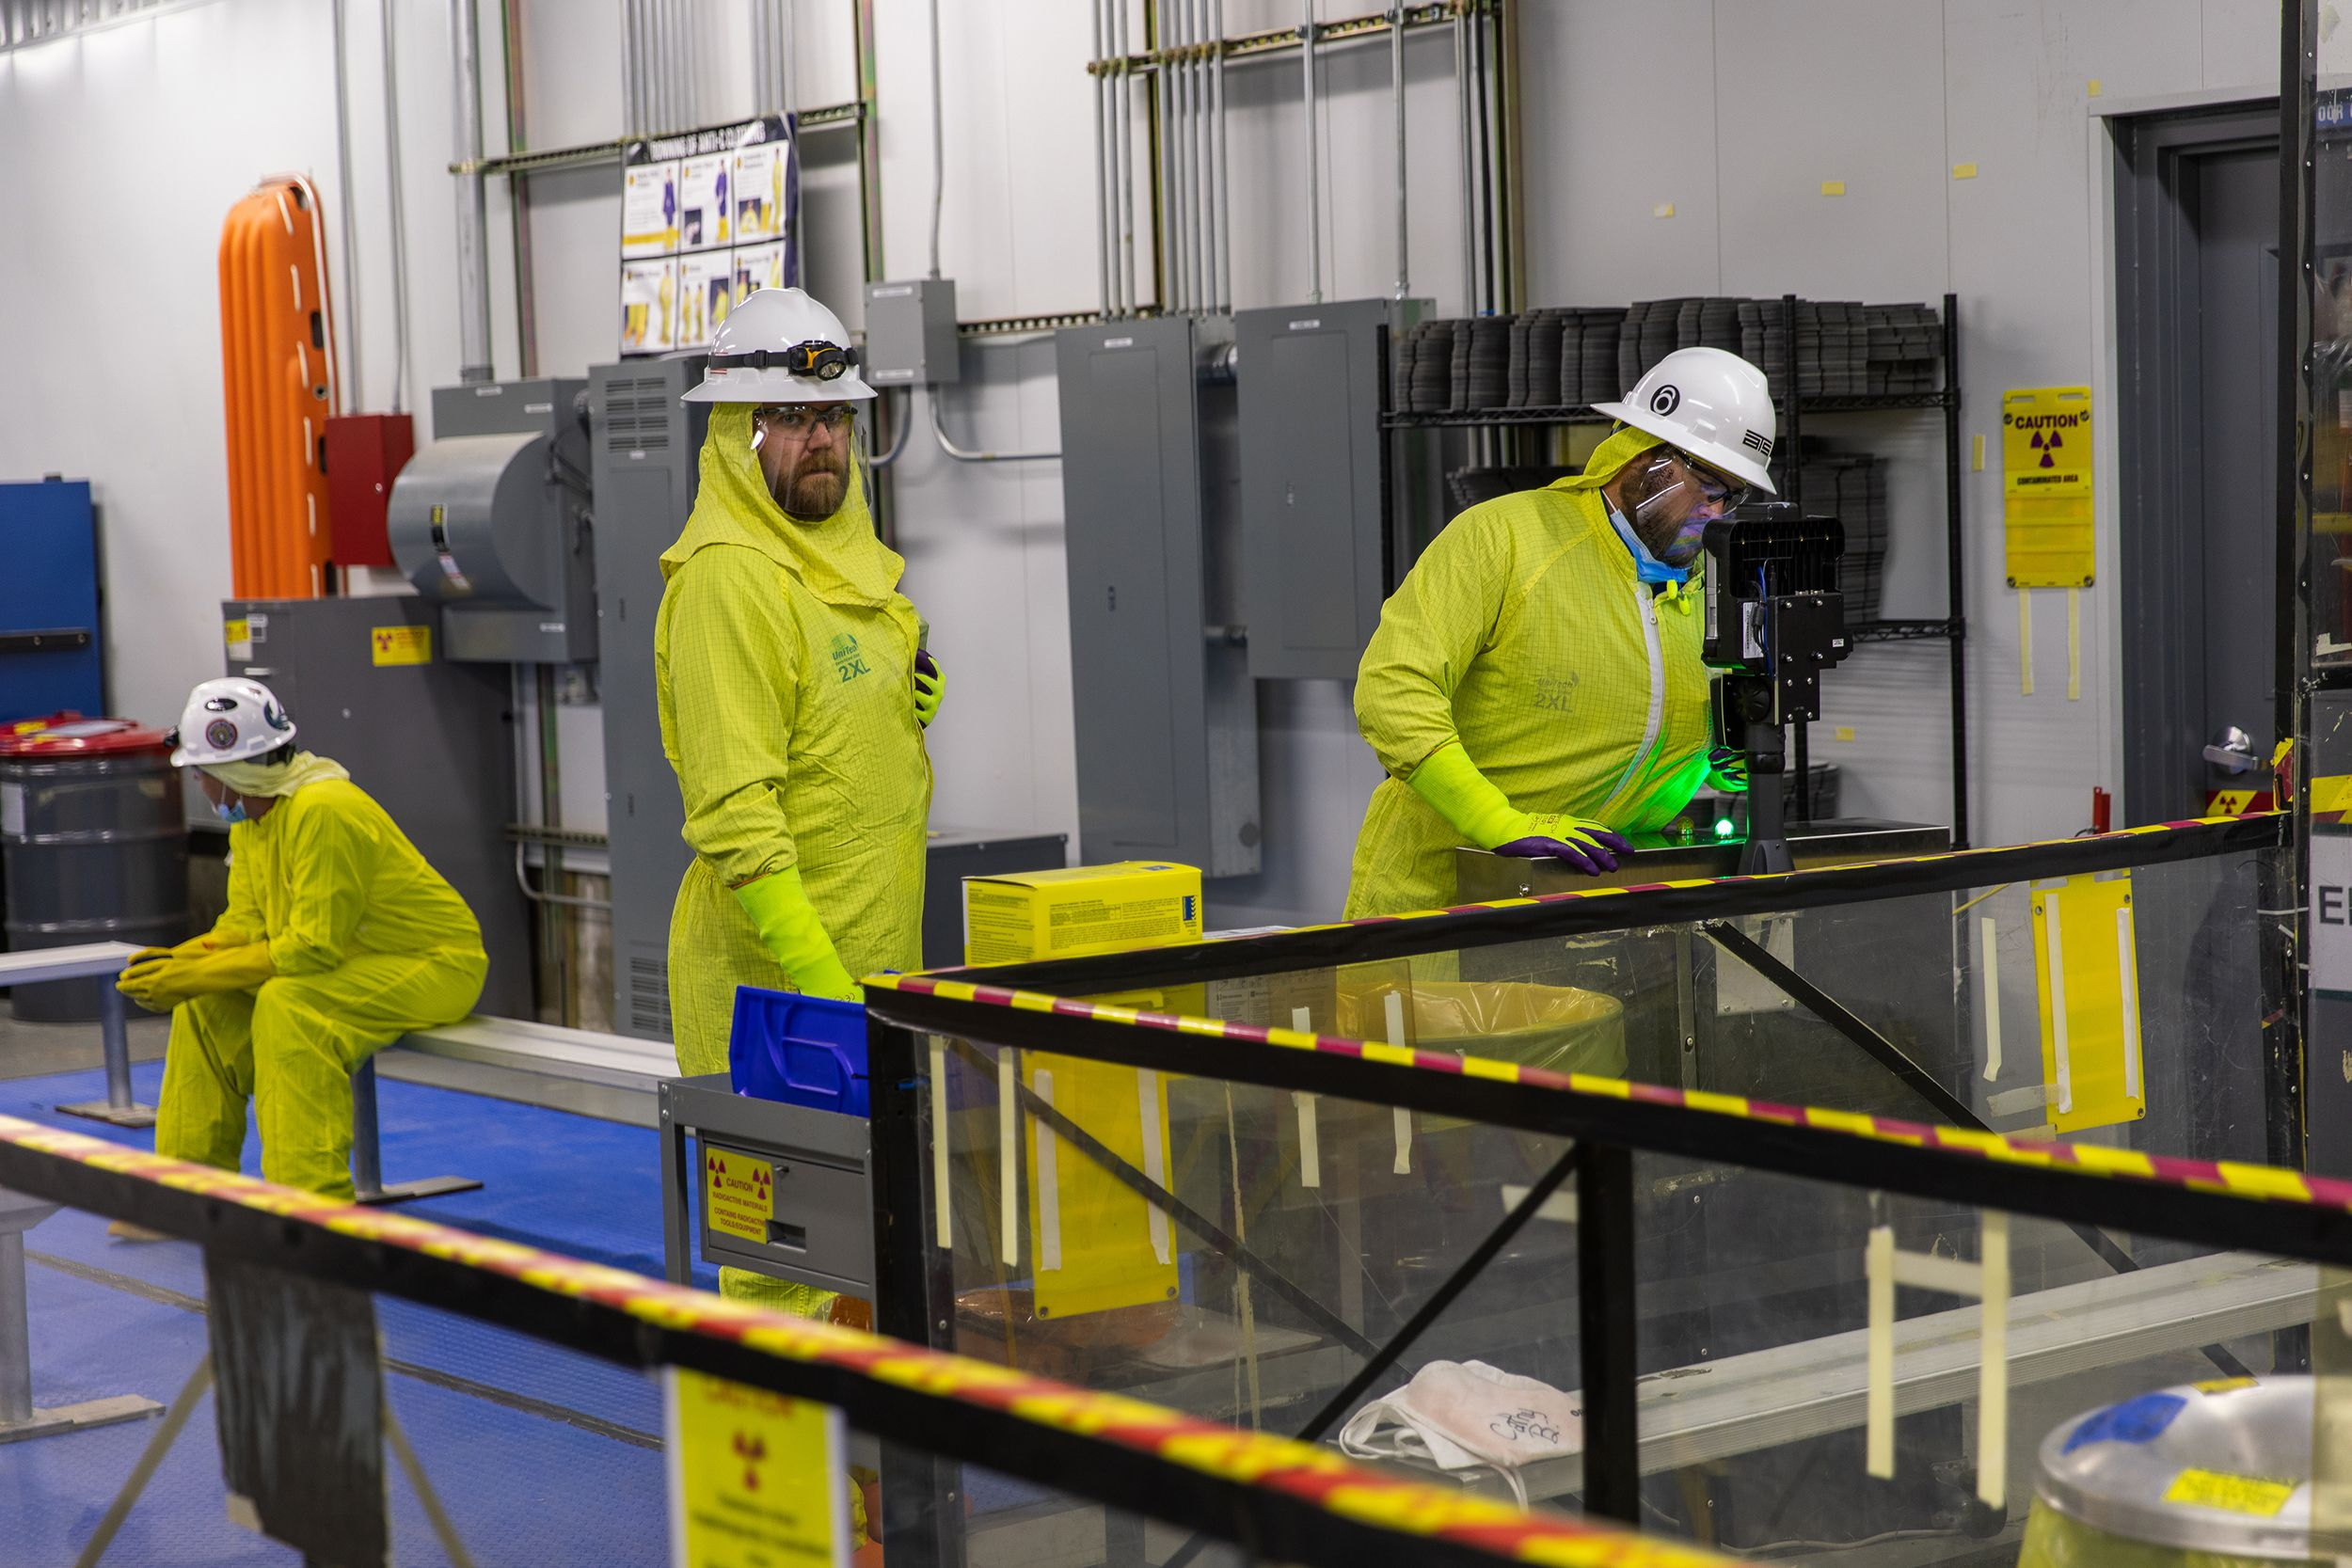 Workers prepare before going into the Unit 1 Containment Building during the Byron Station refueling outage. The Unit 1 reactor is located inside the containment building.